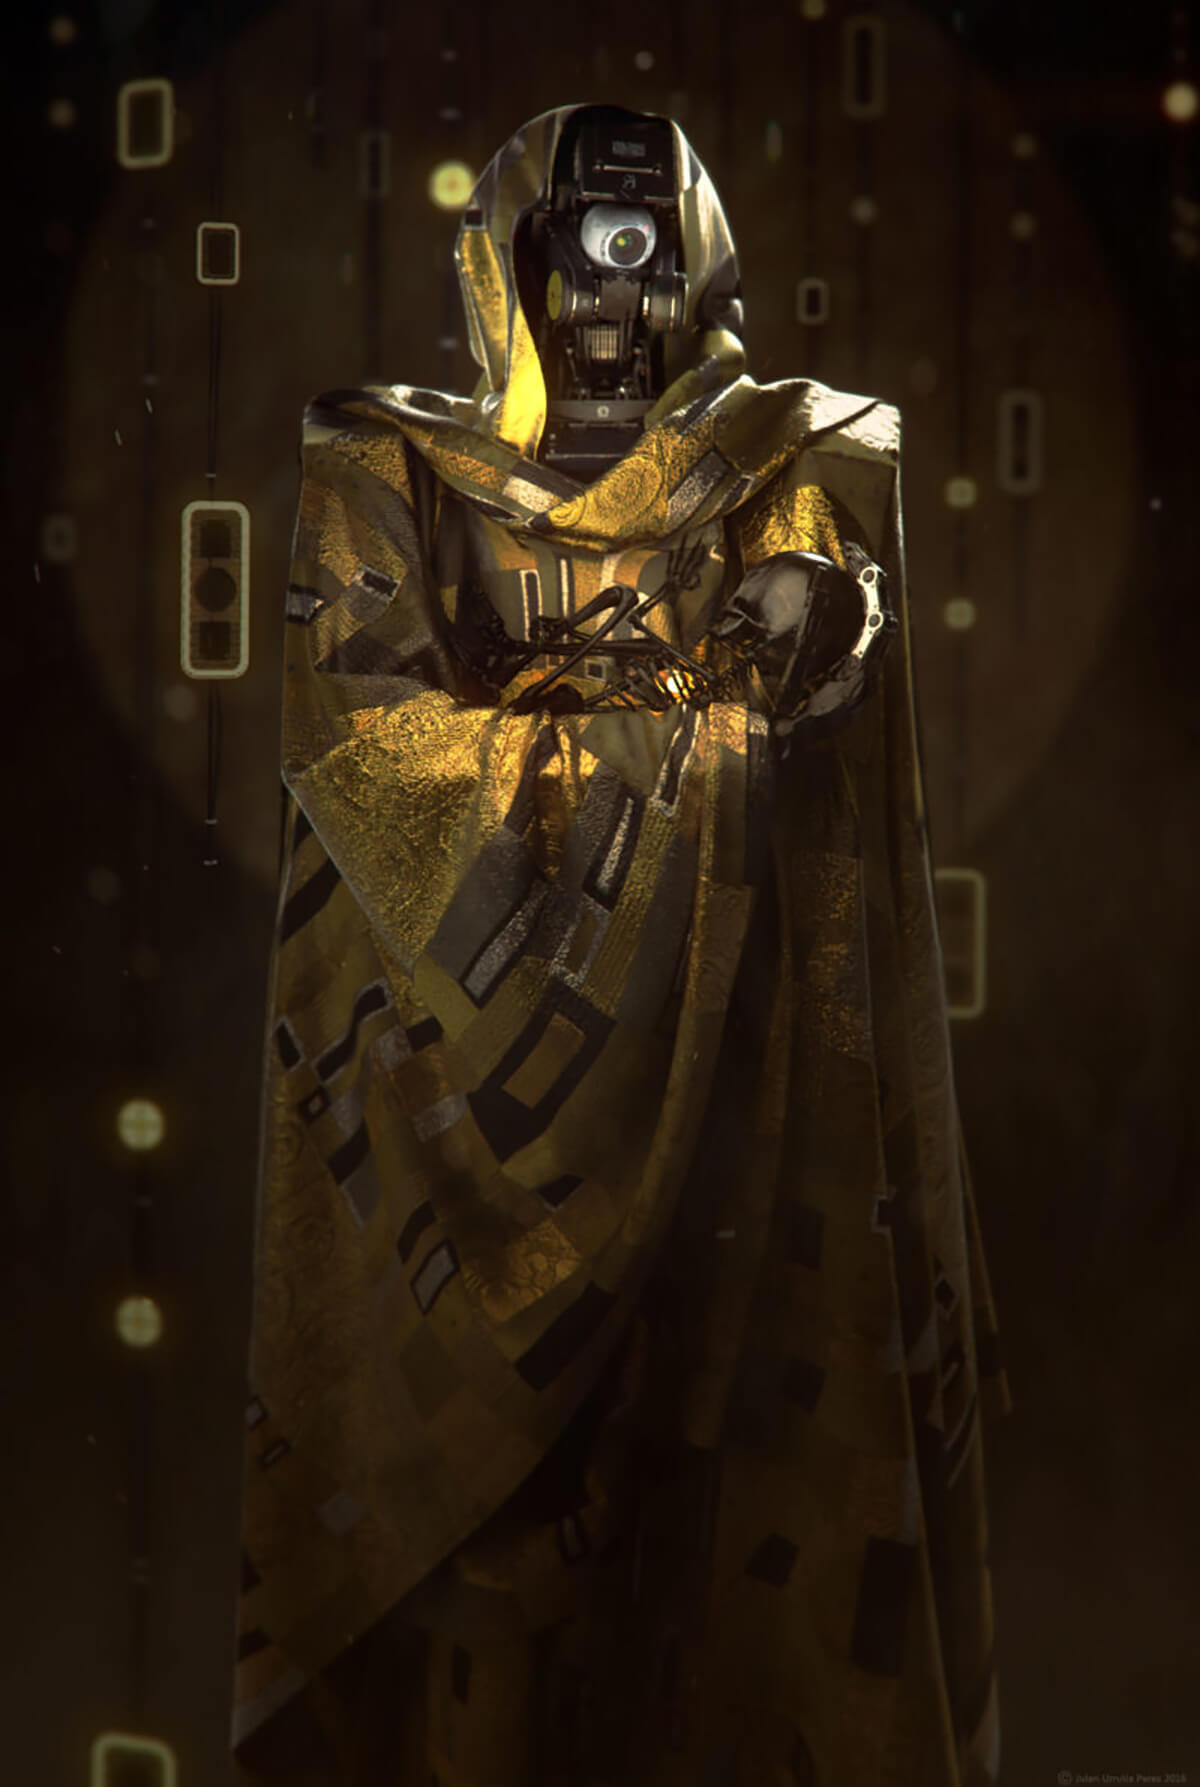 A one-eyed robot in a golden hood and cape, inspired by the work of Gustav Klimt